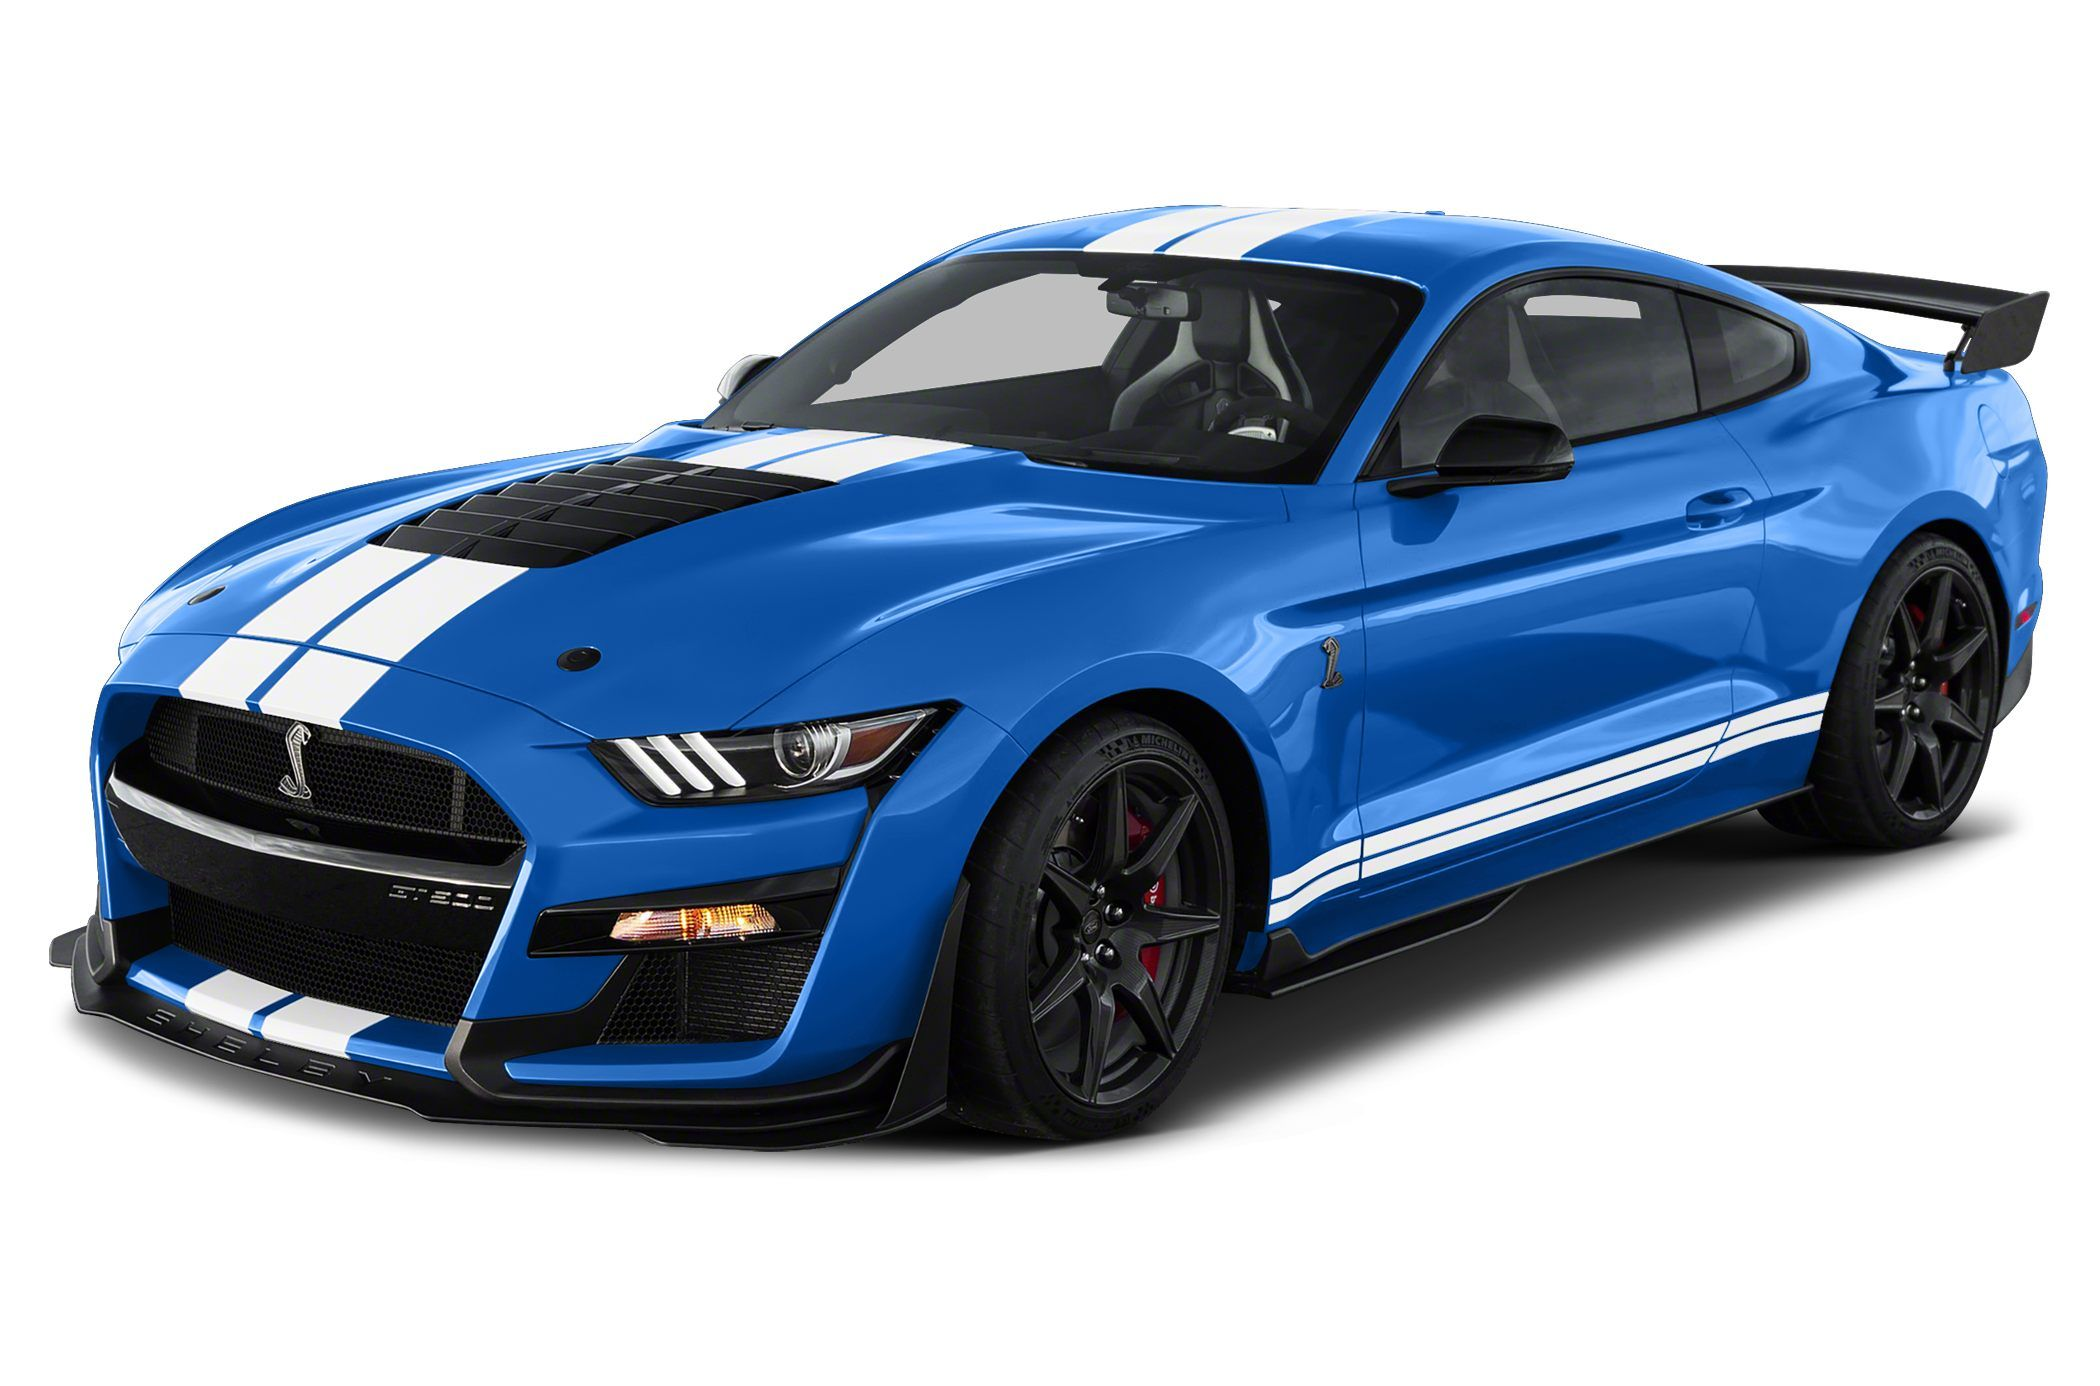 2020 Hennessey Ford Mustang Shelby Gt500 Gets Up To 1 200 Horsepower Ford Mustang Shelby Gt500 Shelby Gt500 Mustang Shelby